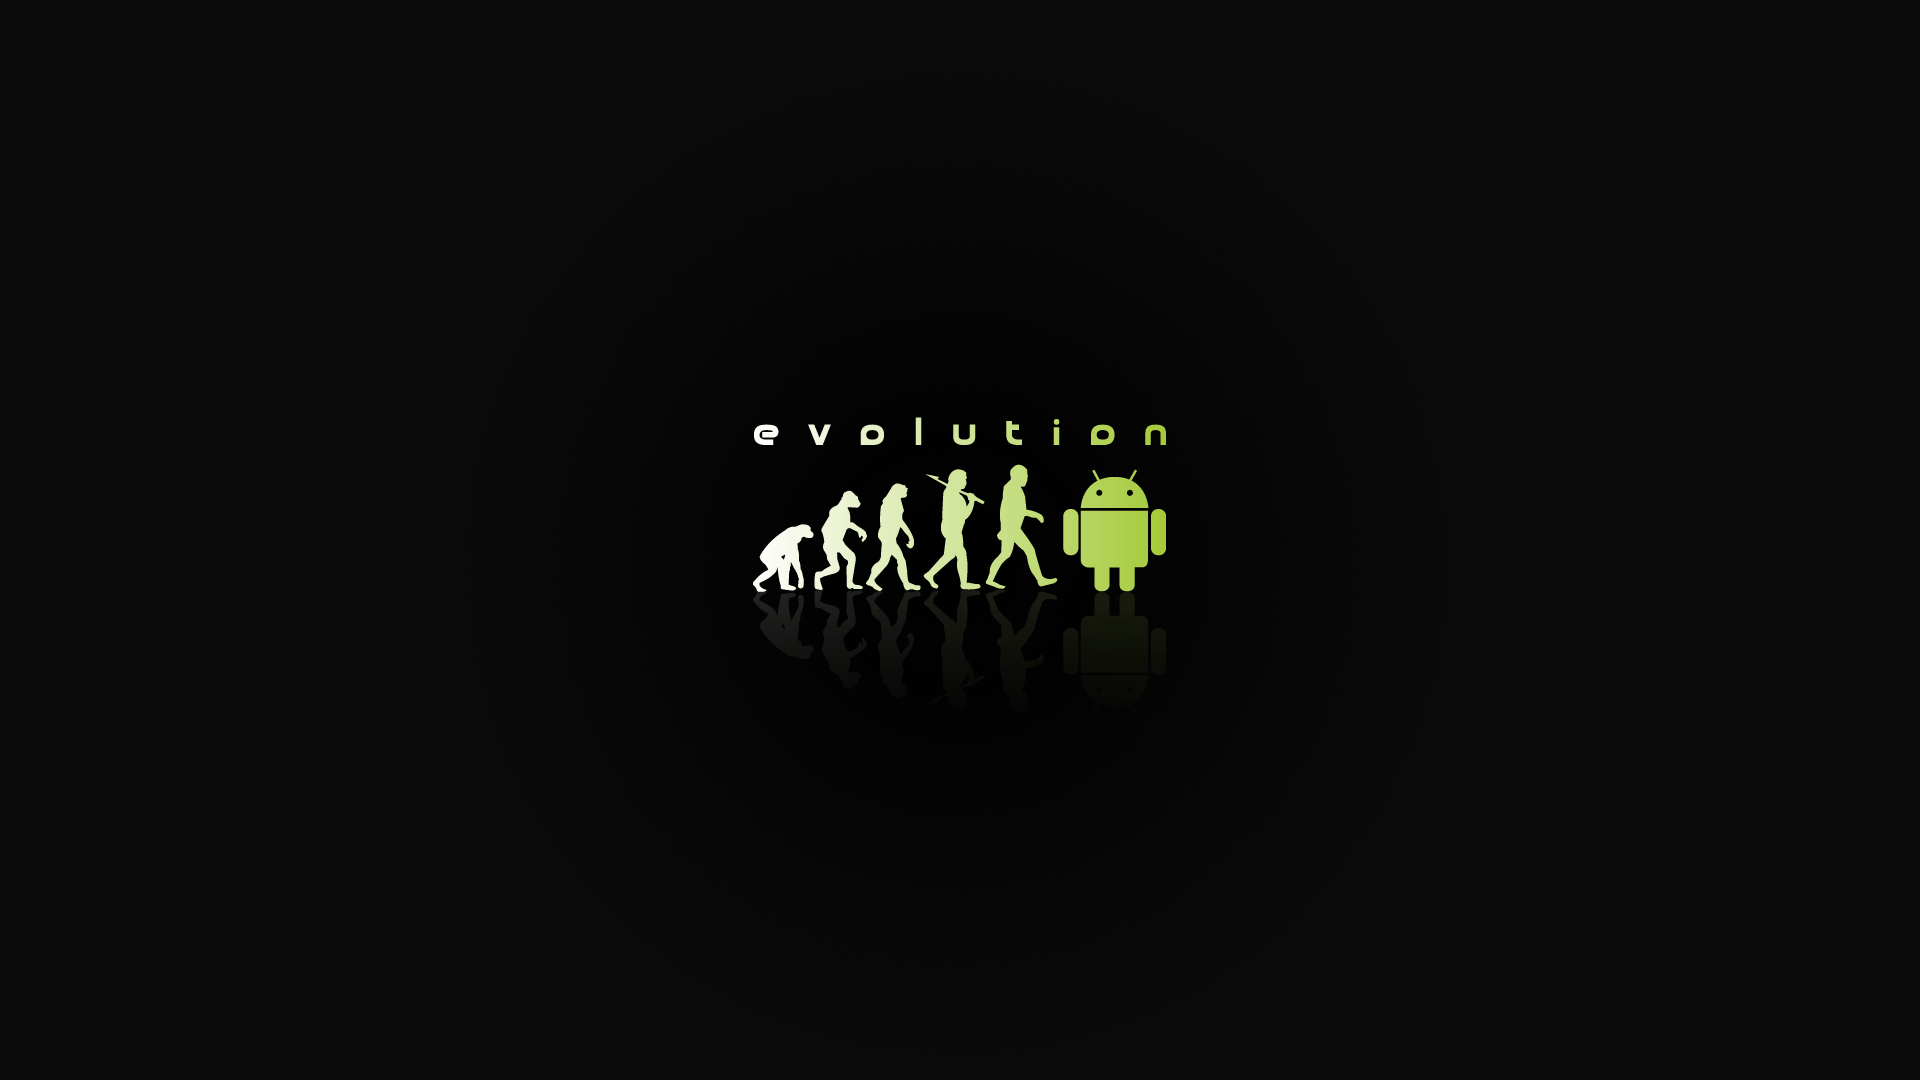 android tablet wallpaper hd desktop images of android tablet 1920a—1080